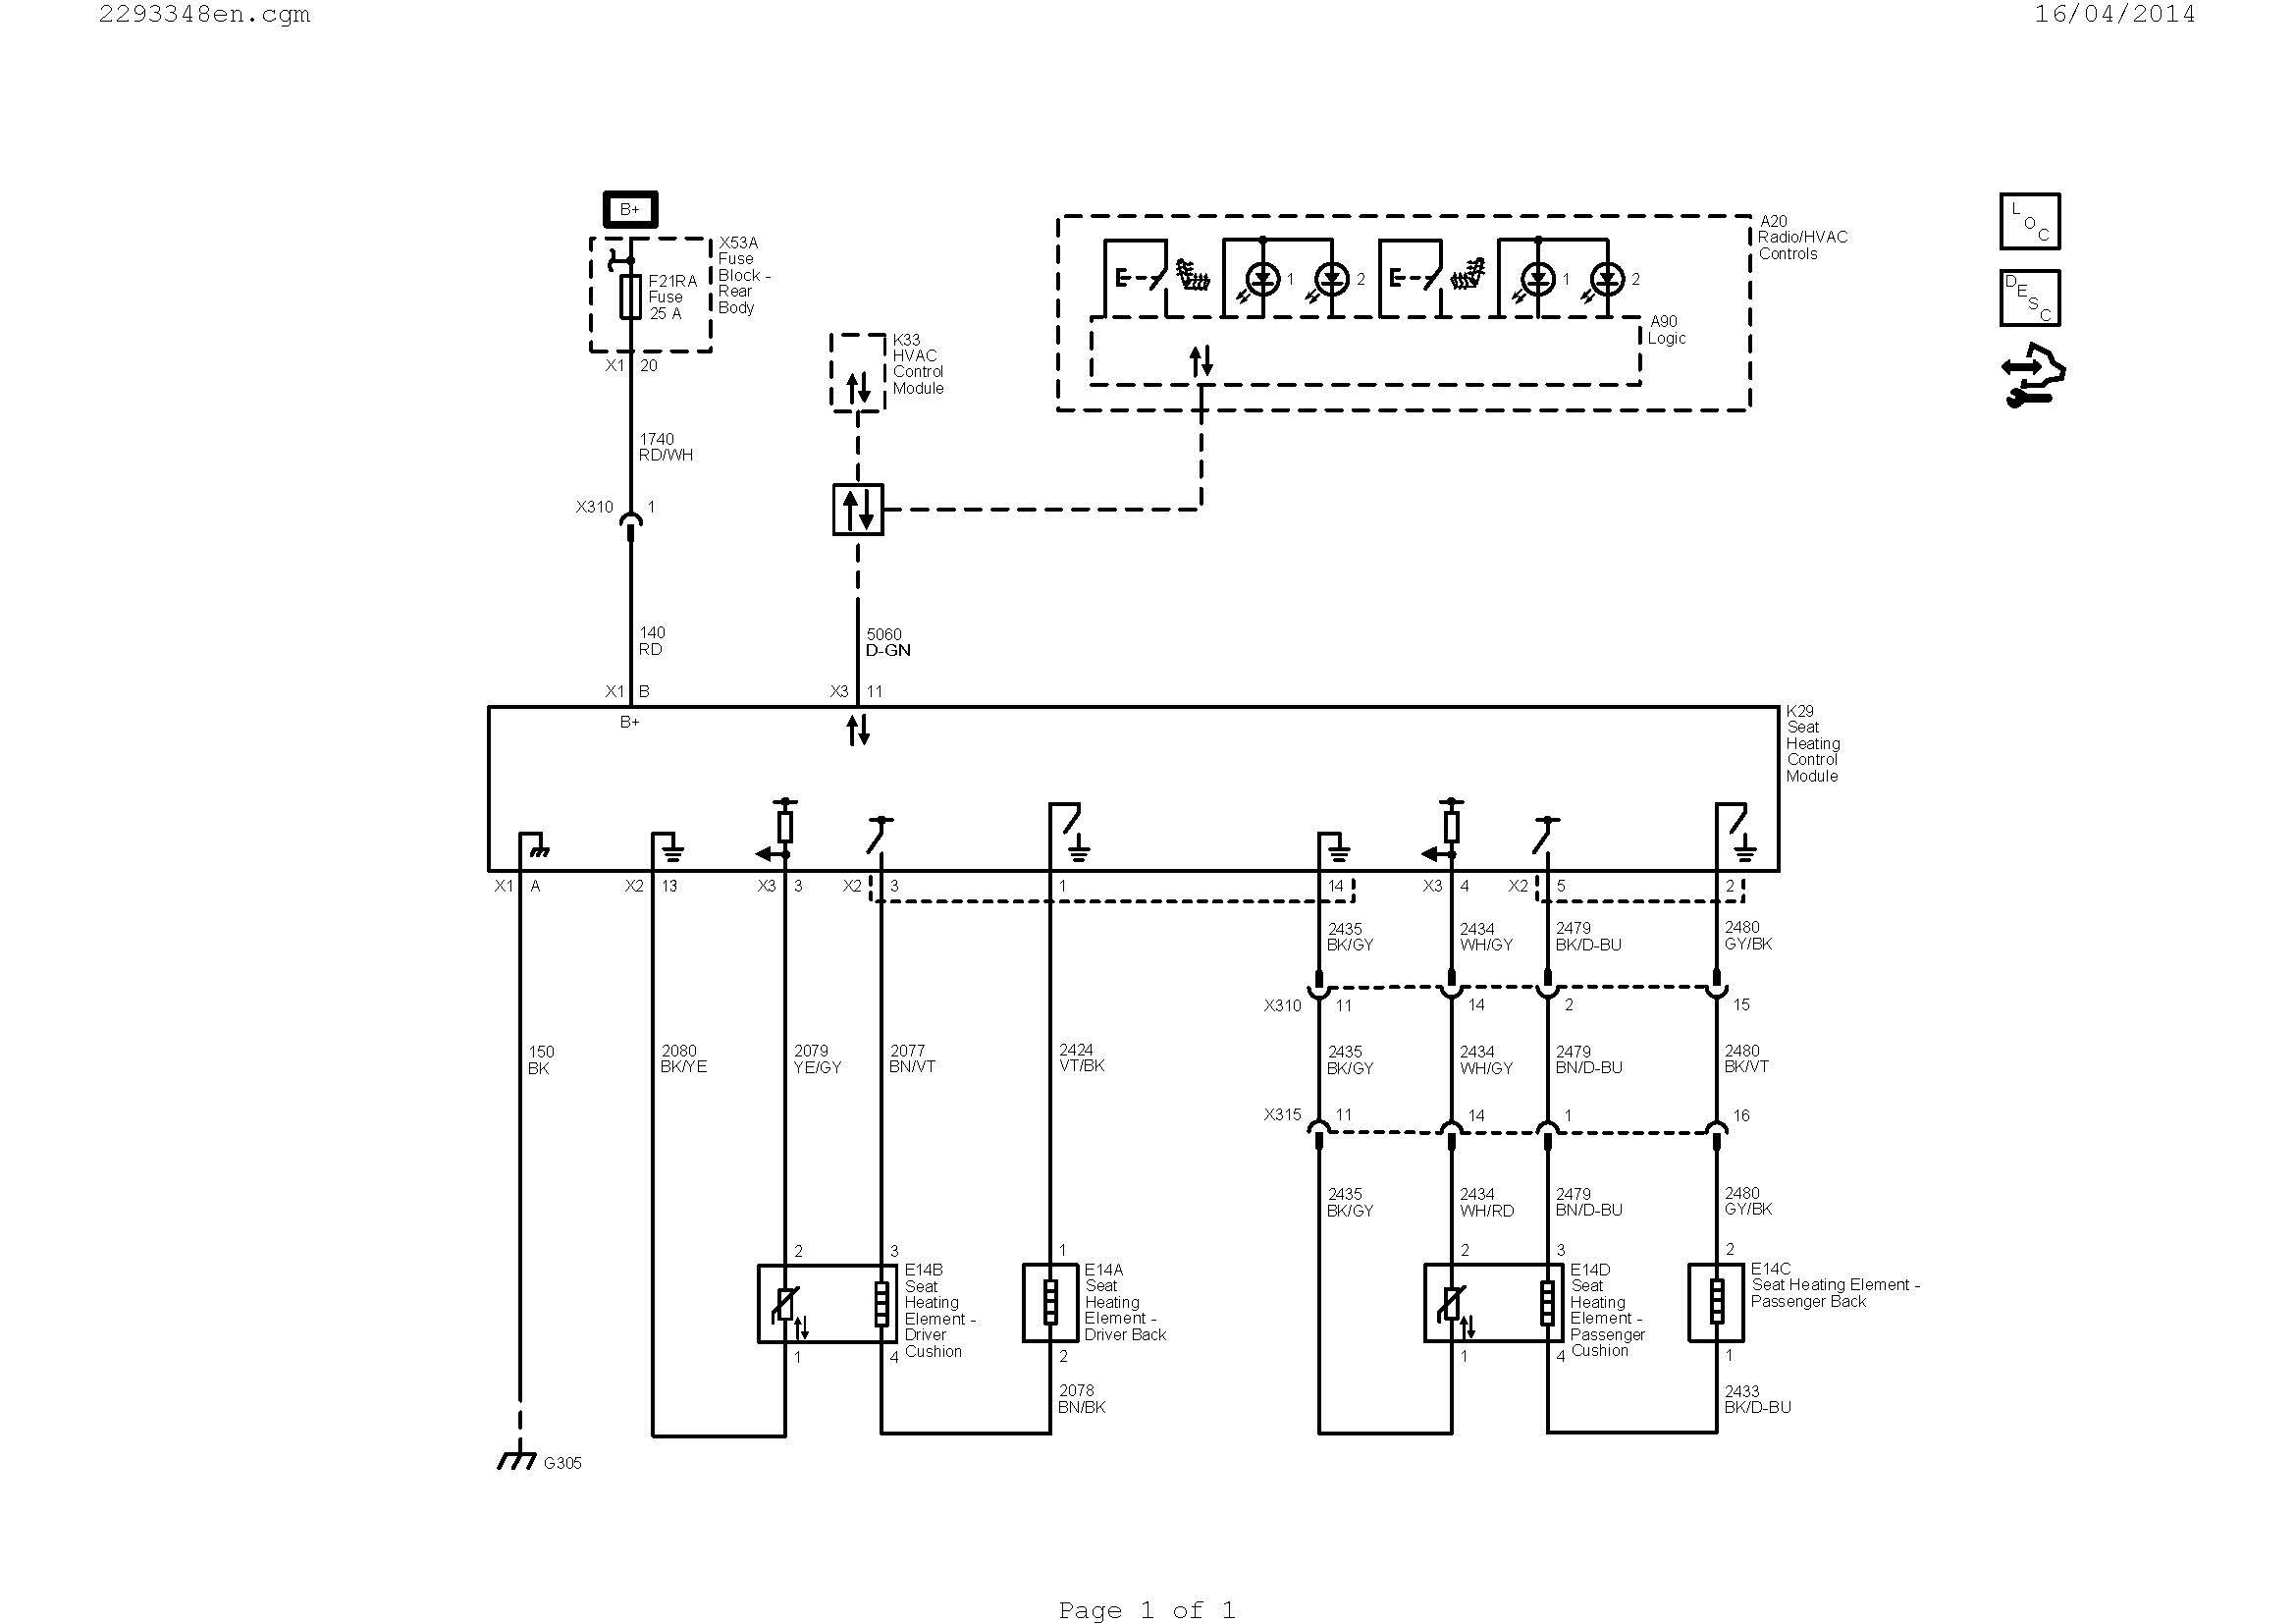 residential air conditioner wiring diagram Download-air conditioner wiring diagram picture Collection Wiring A Ac Thermostat Diagram New Wiring Diagram Ac 8-t